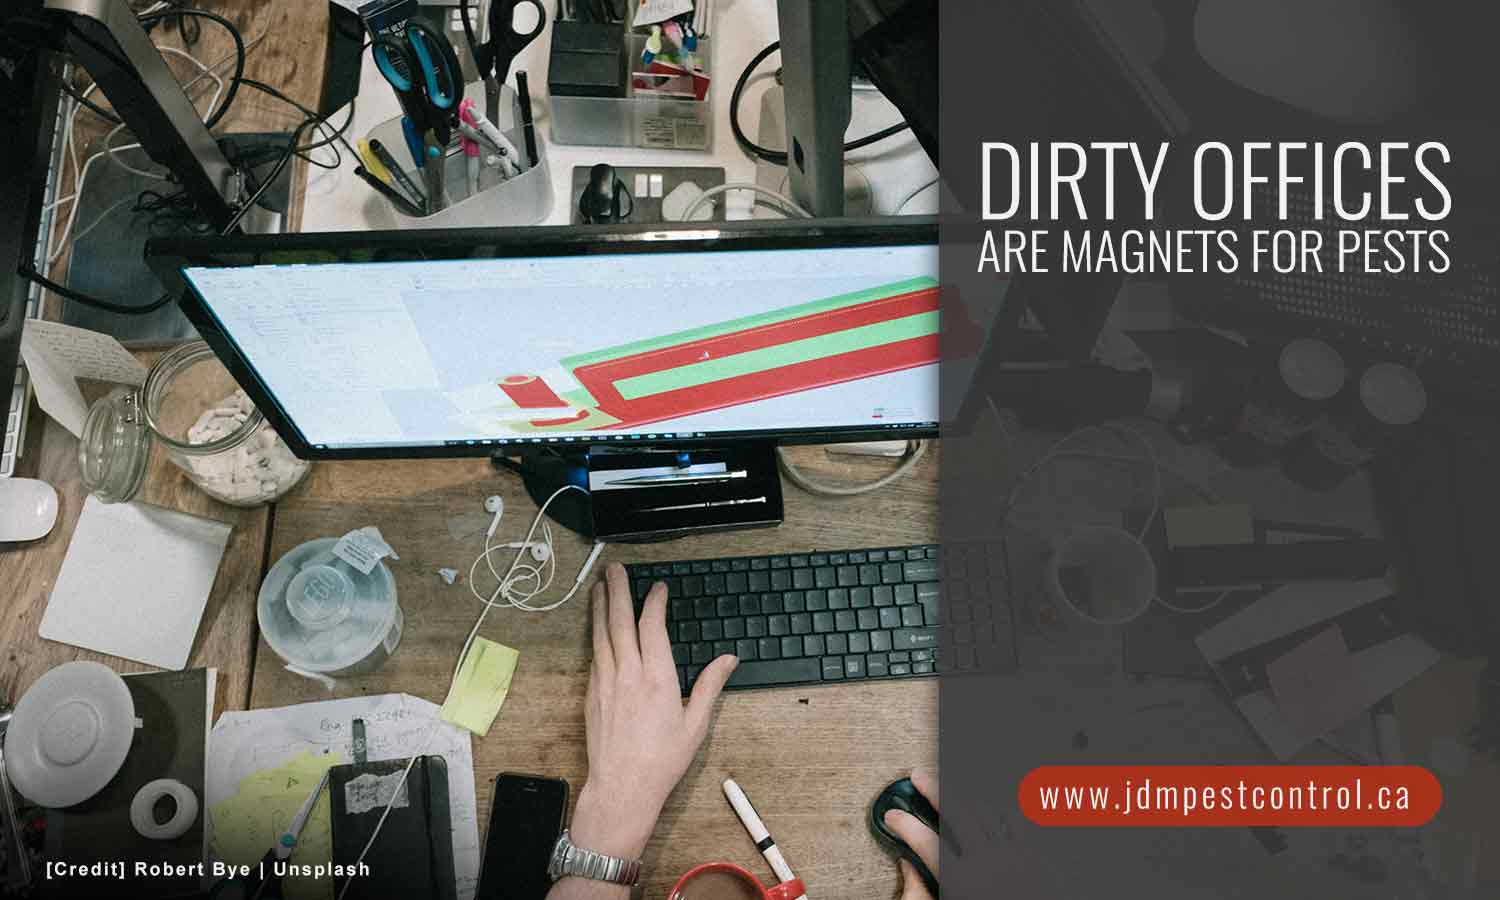 Dirty offices are magnets for pests